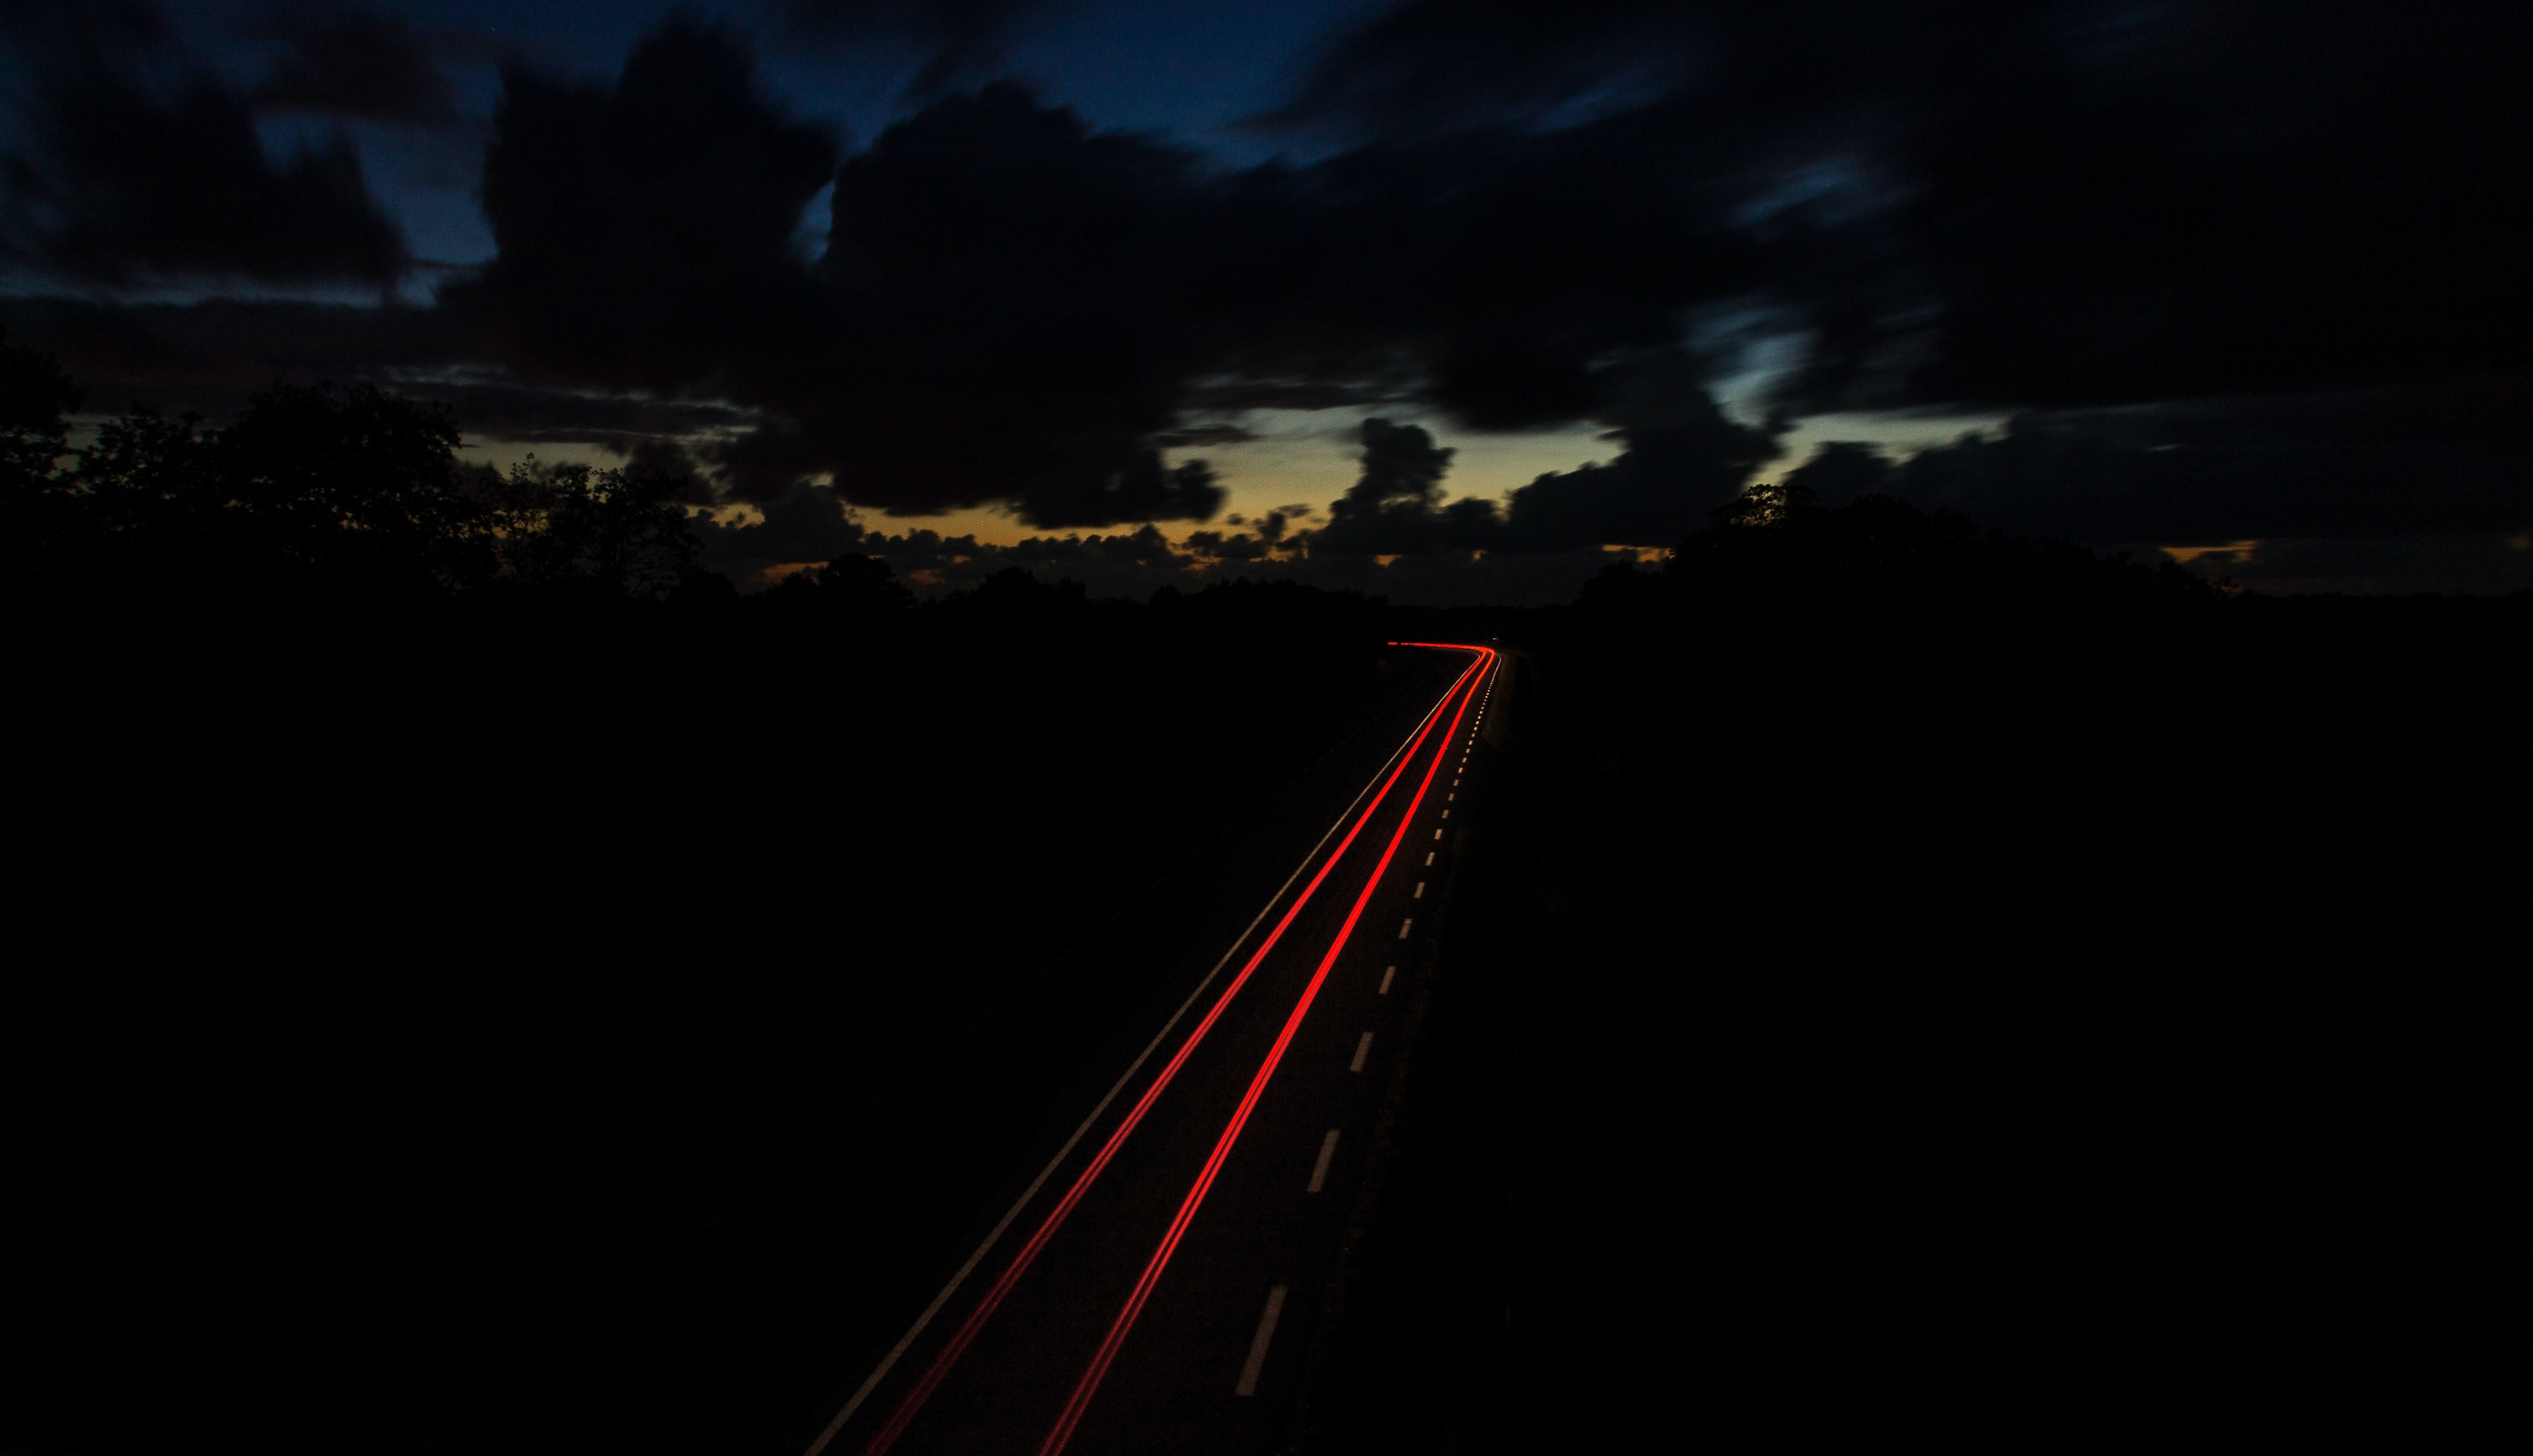 time lapse photography of vehicle light